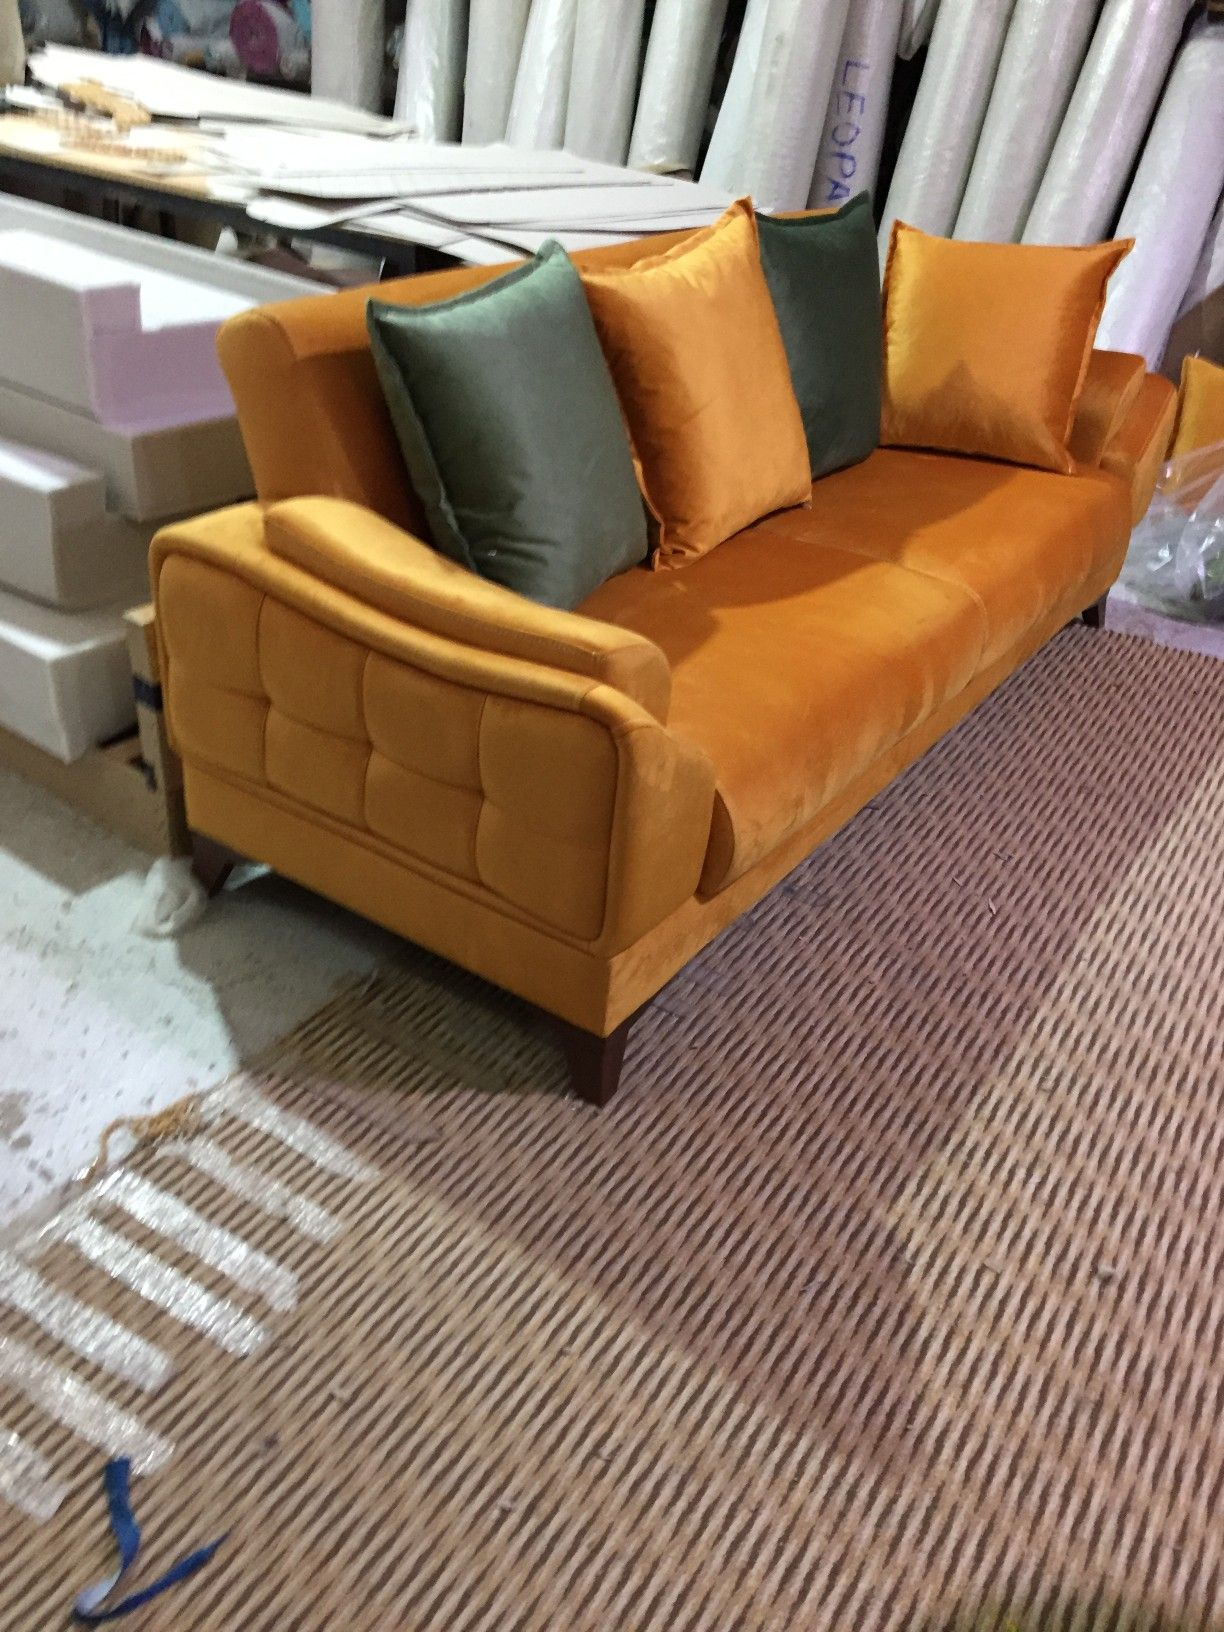 Pin By Mmn Cakir On Mmncakir Furniture Chair And A Half Patio Chair Cushions